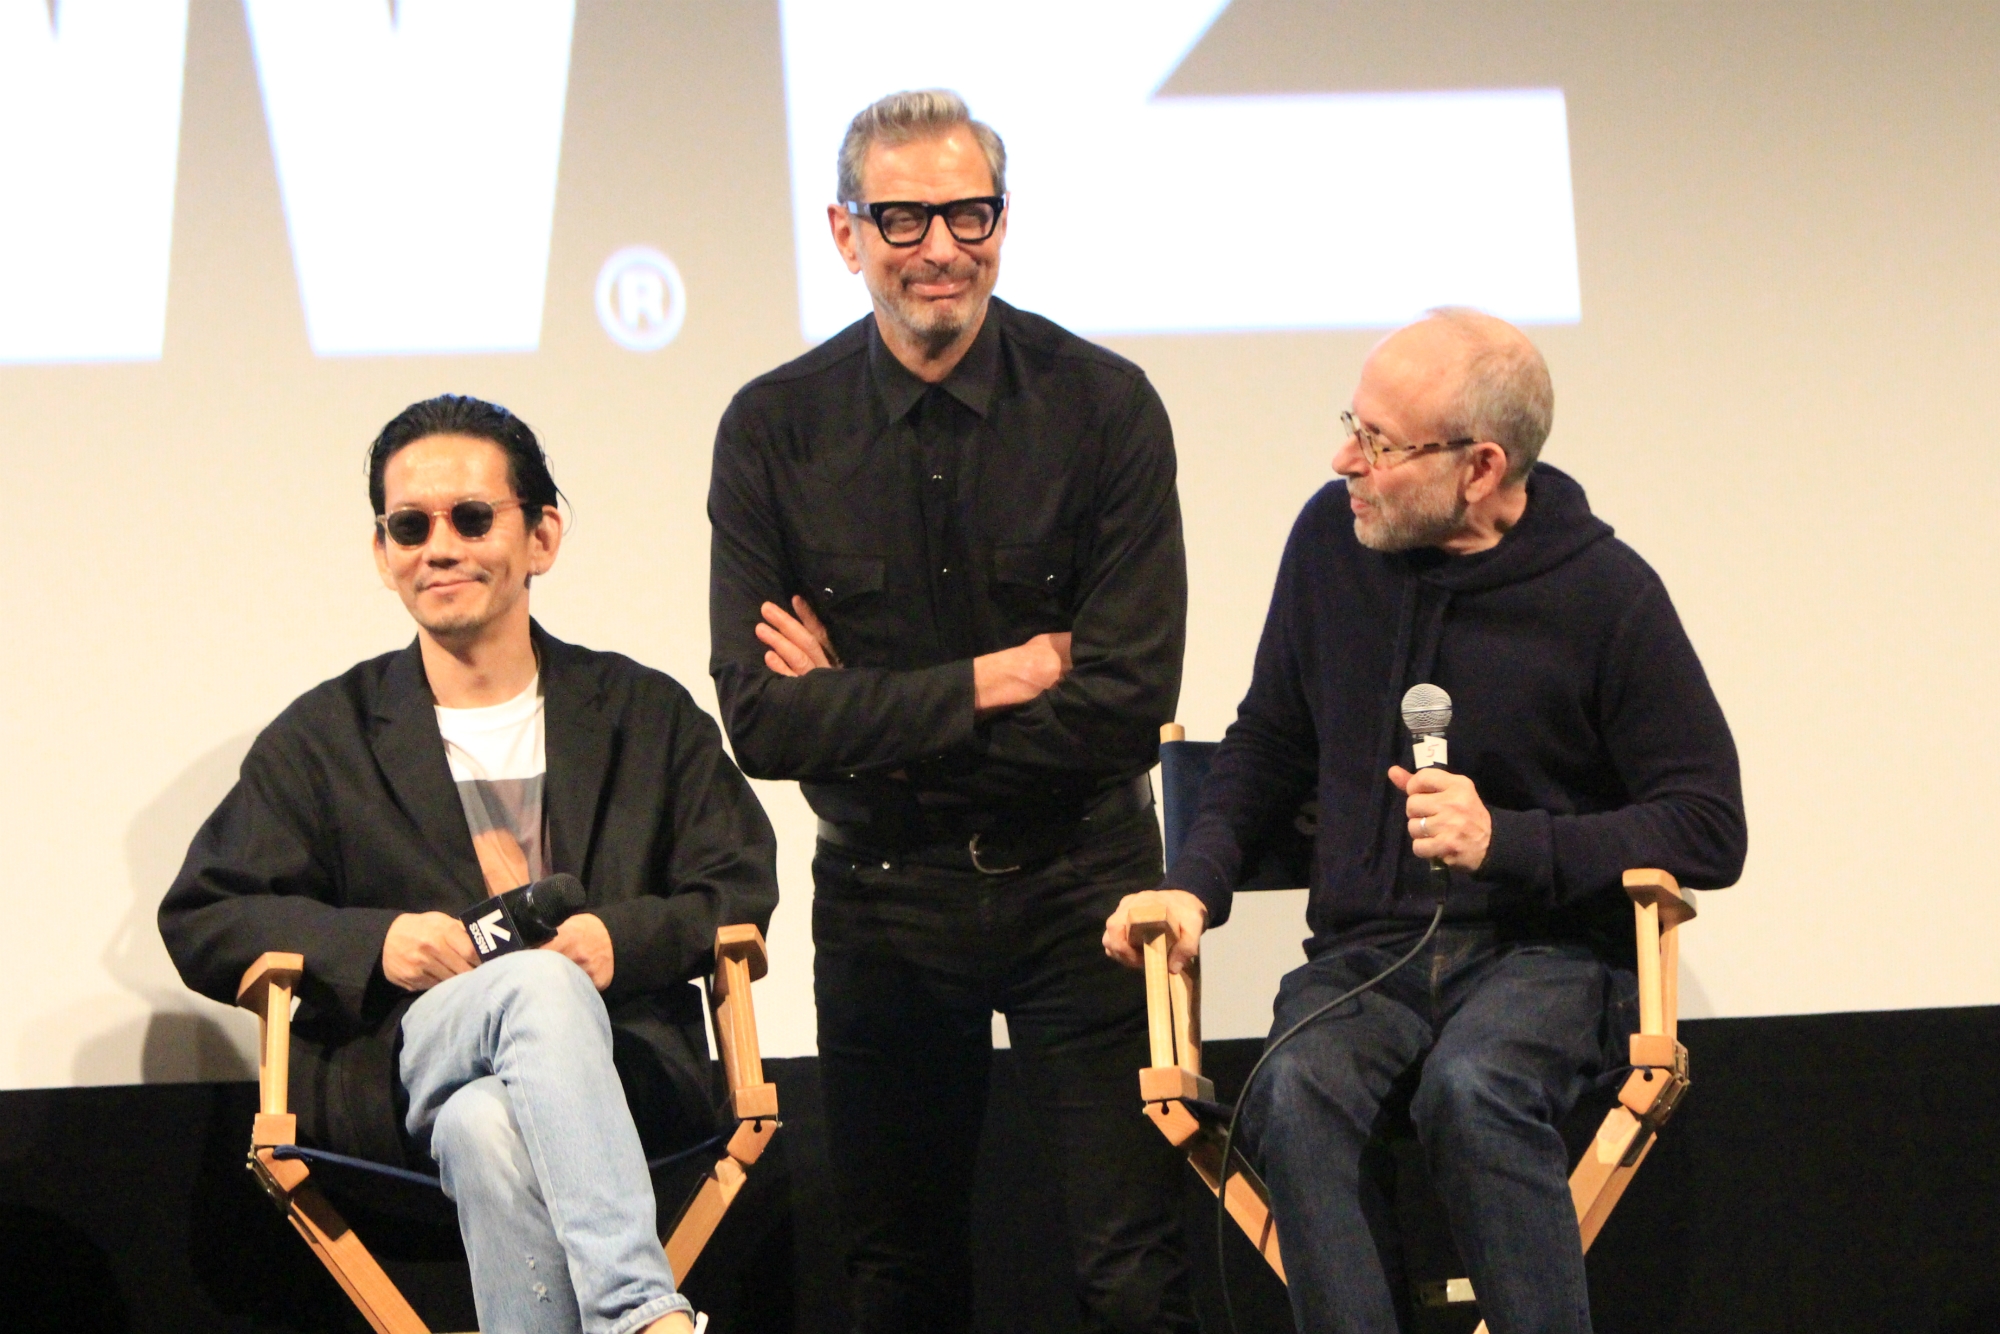 Cast and Crew of Isle of Dogs, photo by Heather Kaplan